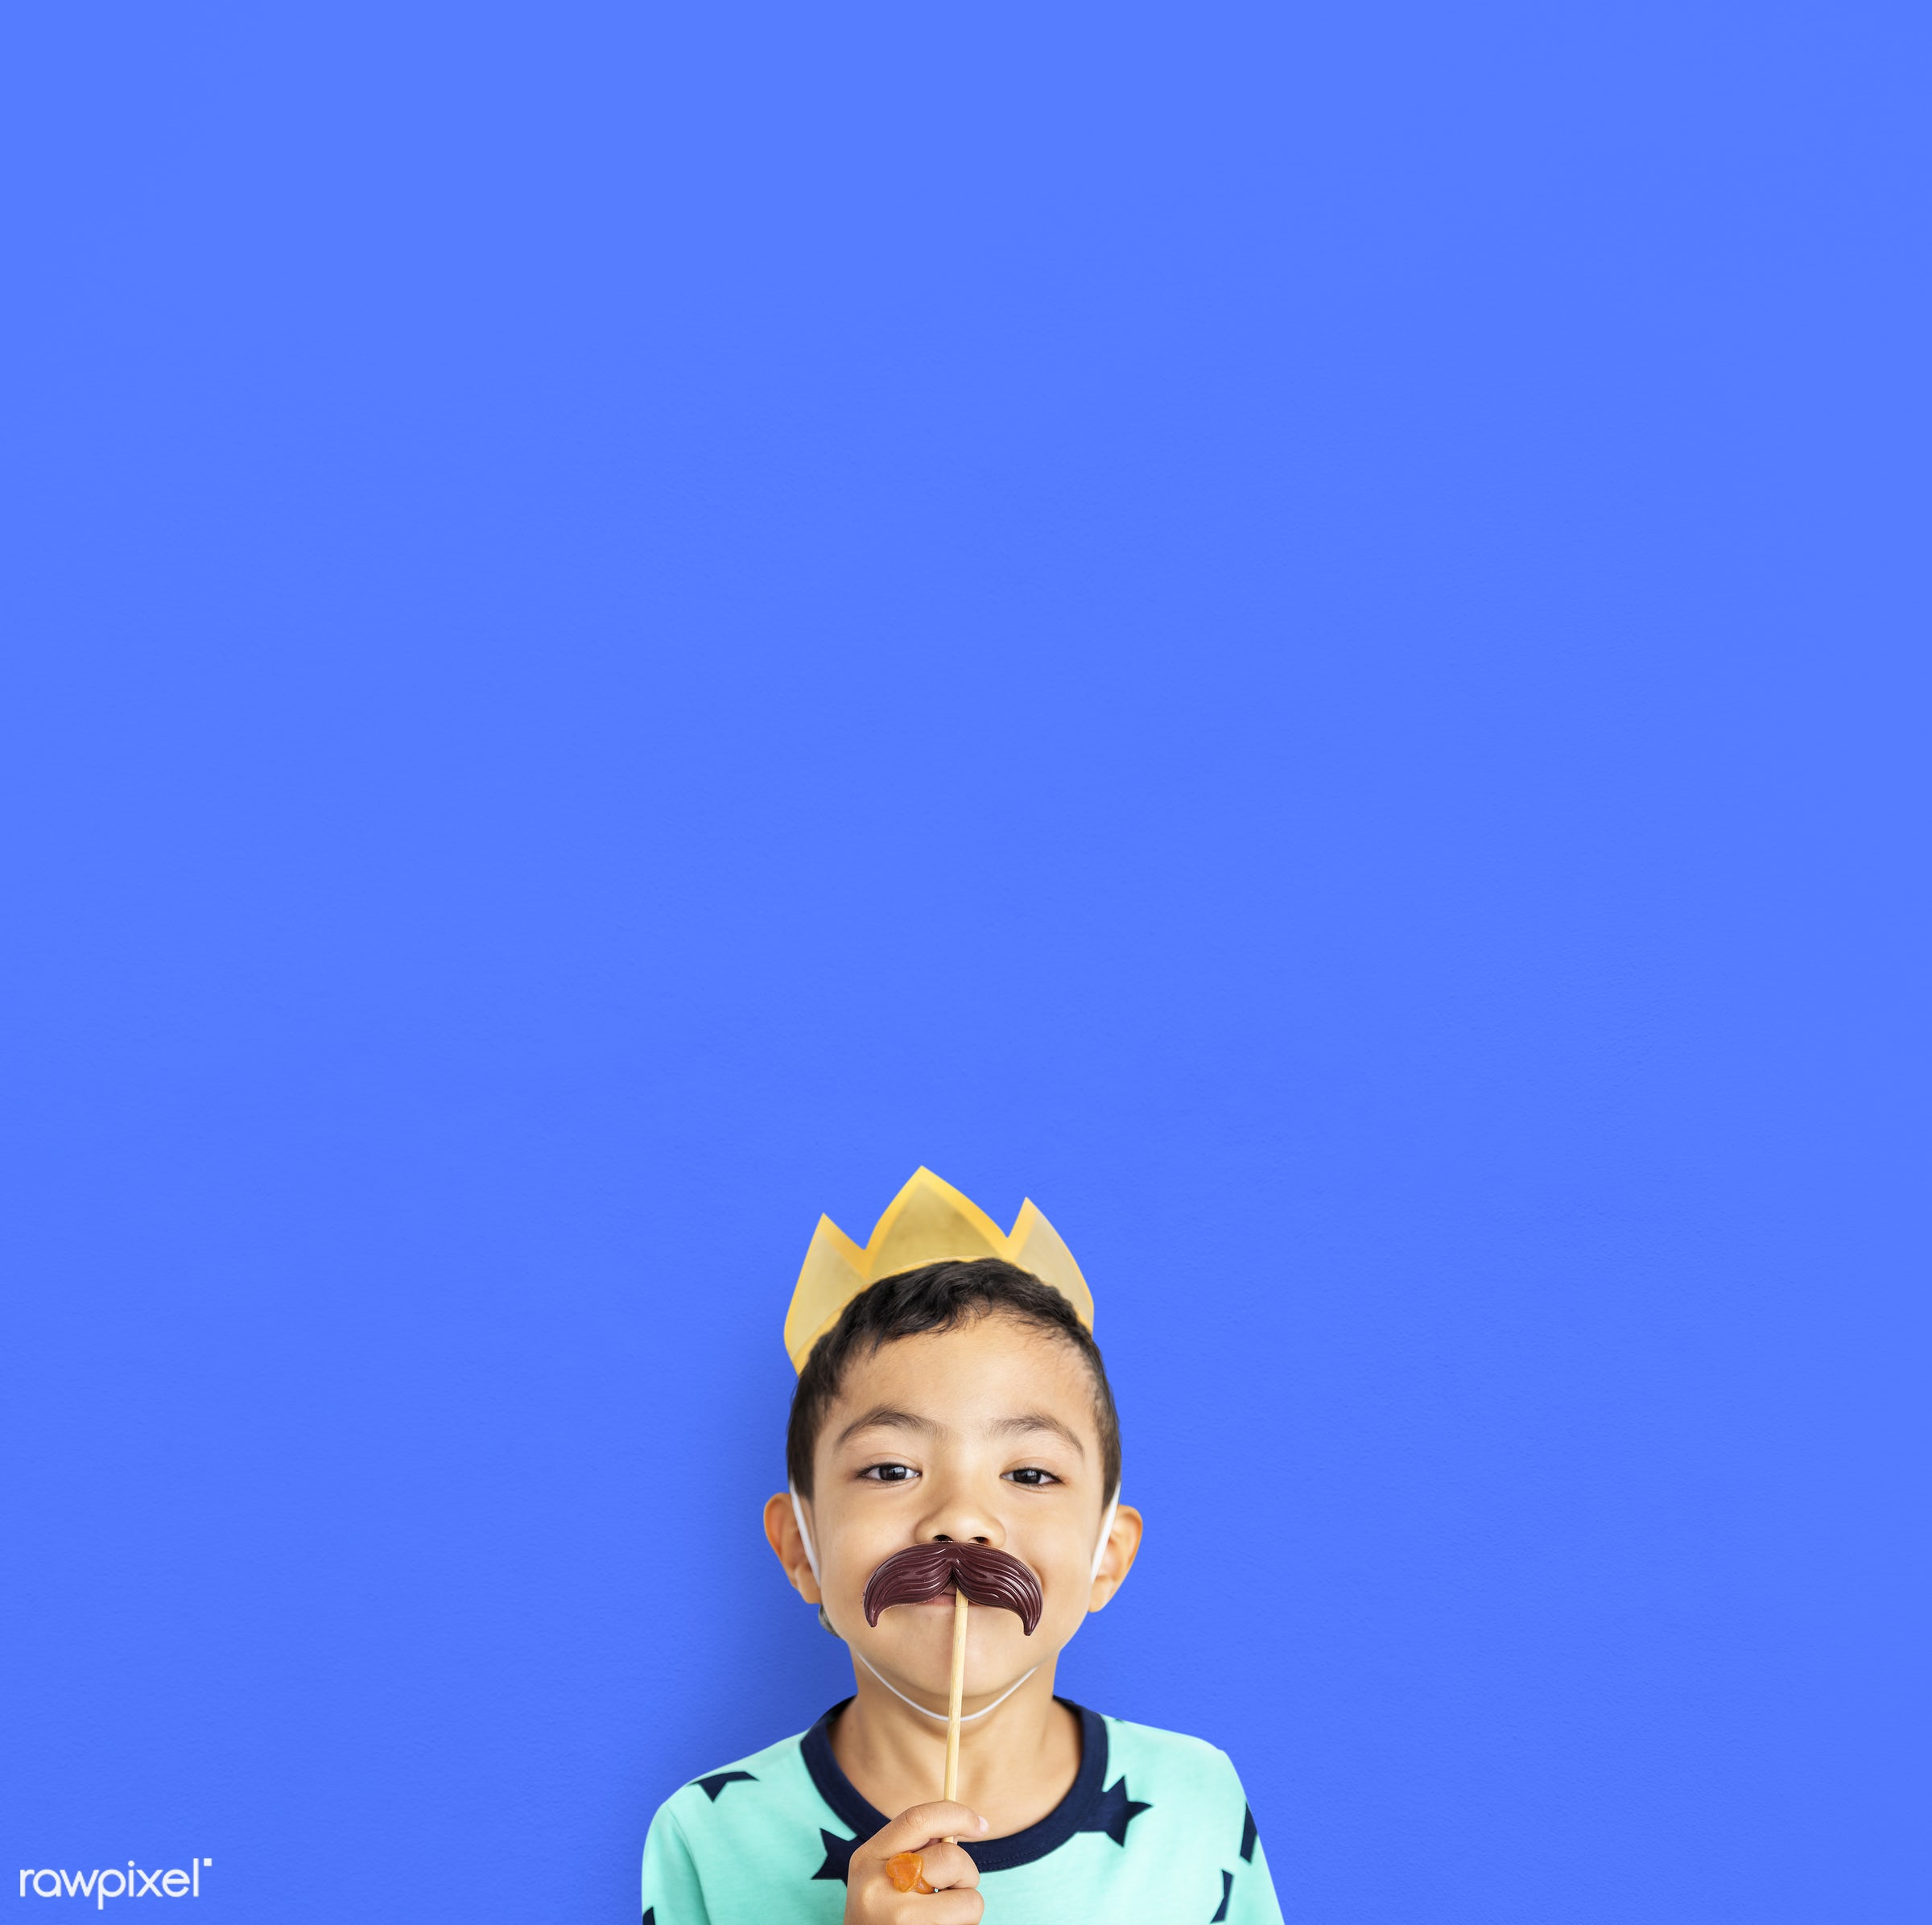 alone, boy, cheerful, child, costume, isolated, kid, mask, one, playful, smiling, young, youth